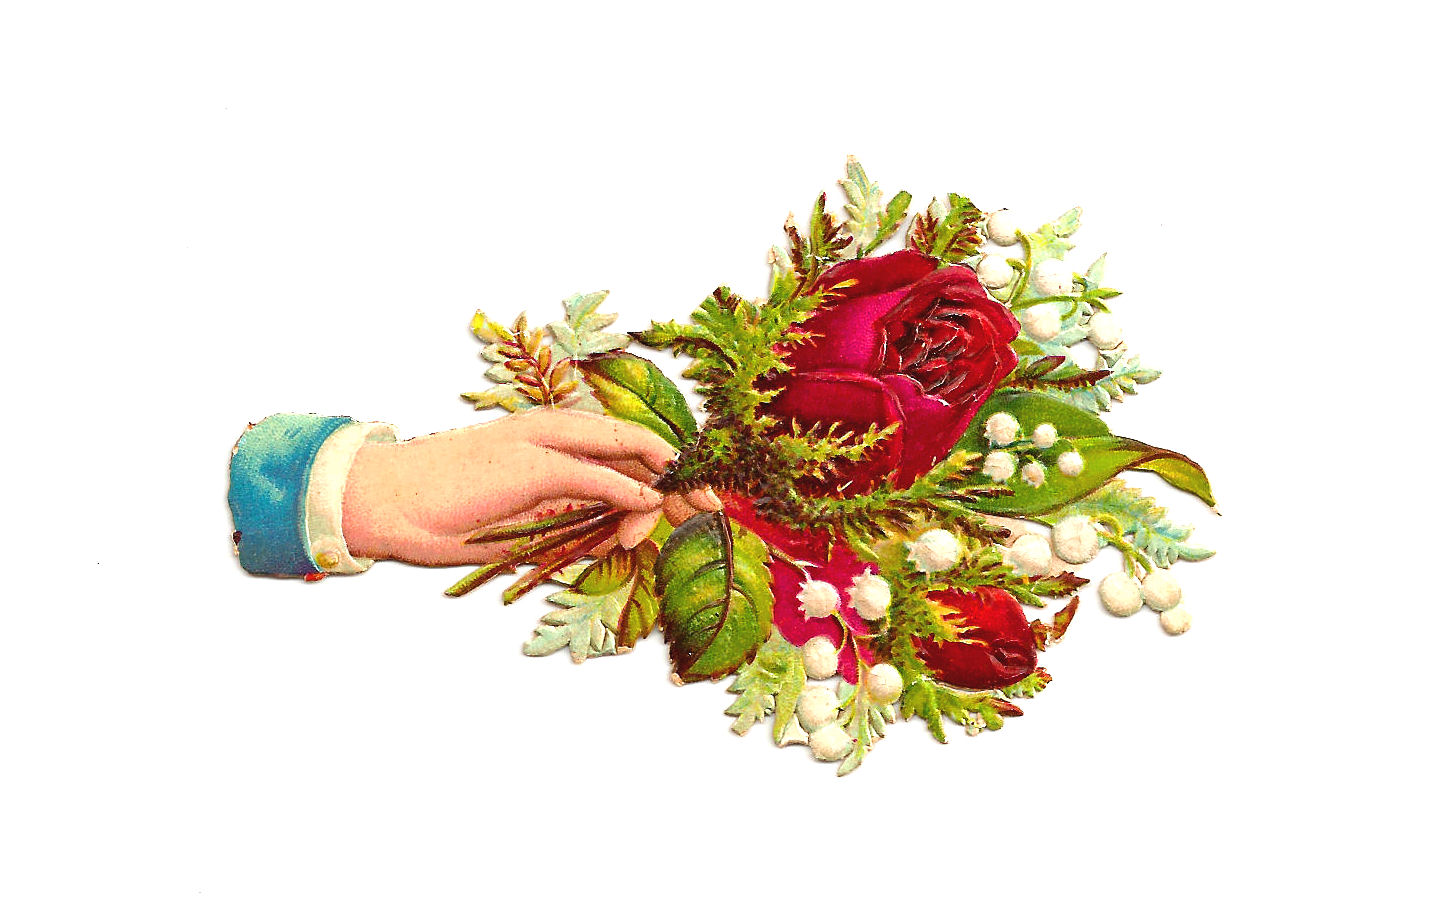 Flower Clip Art Victorian Die Cut Of Hand Whimsy Red Rose Bouquet.